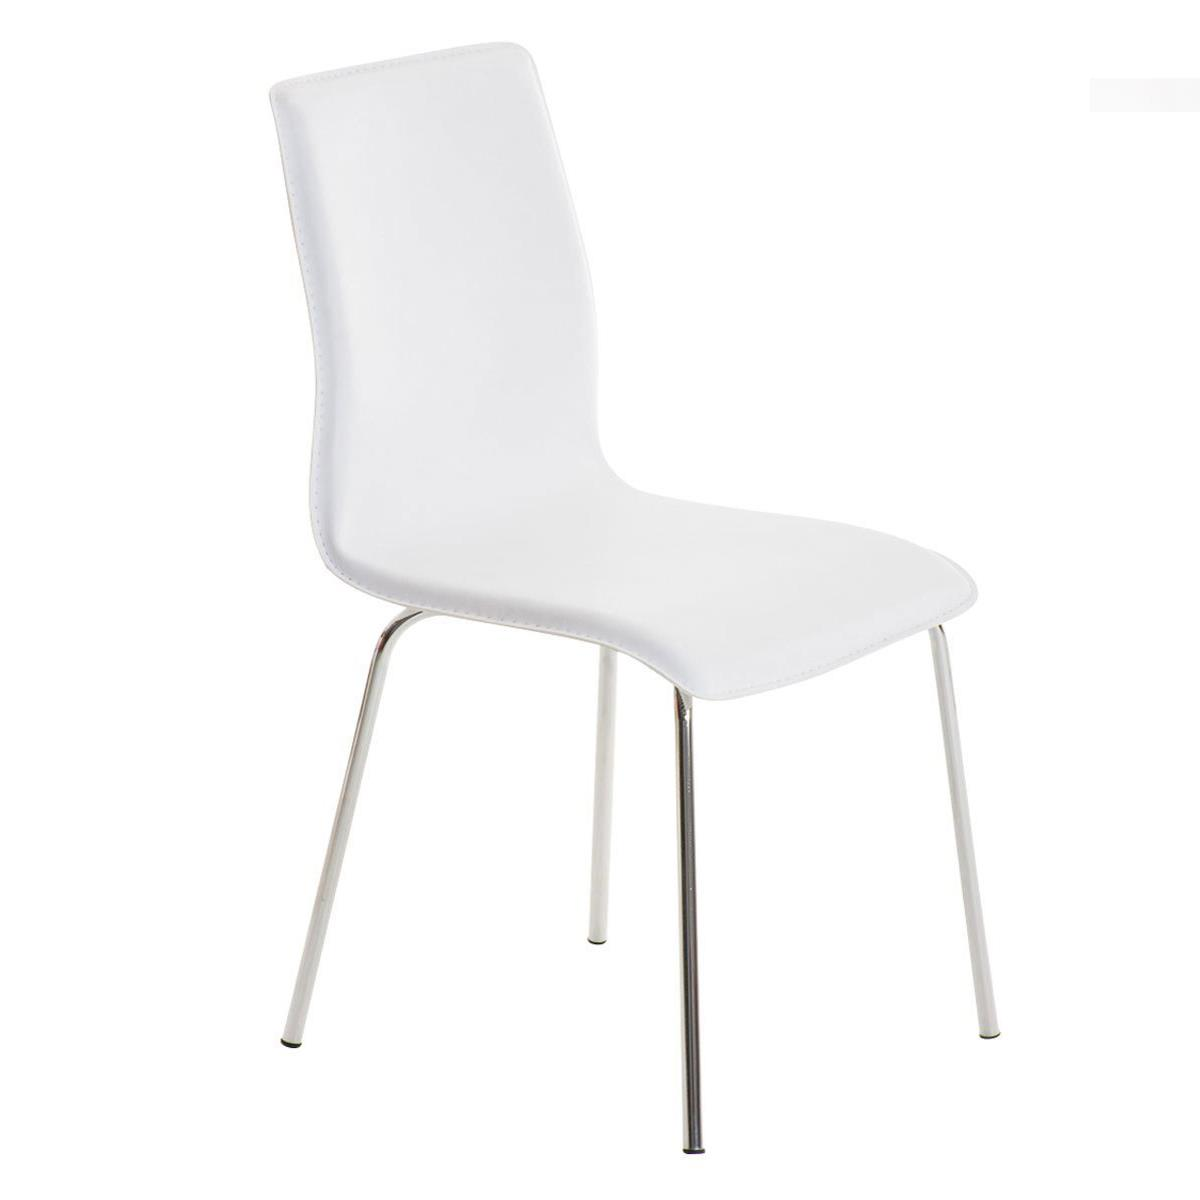 Silla de Confidente MIKI, Diseño Exclusivo, Tapizada en Piel color Blanco